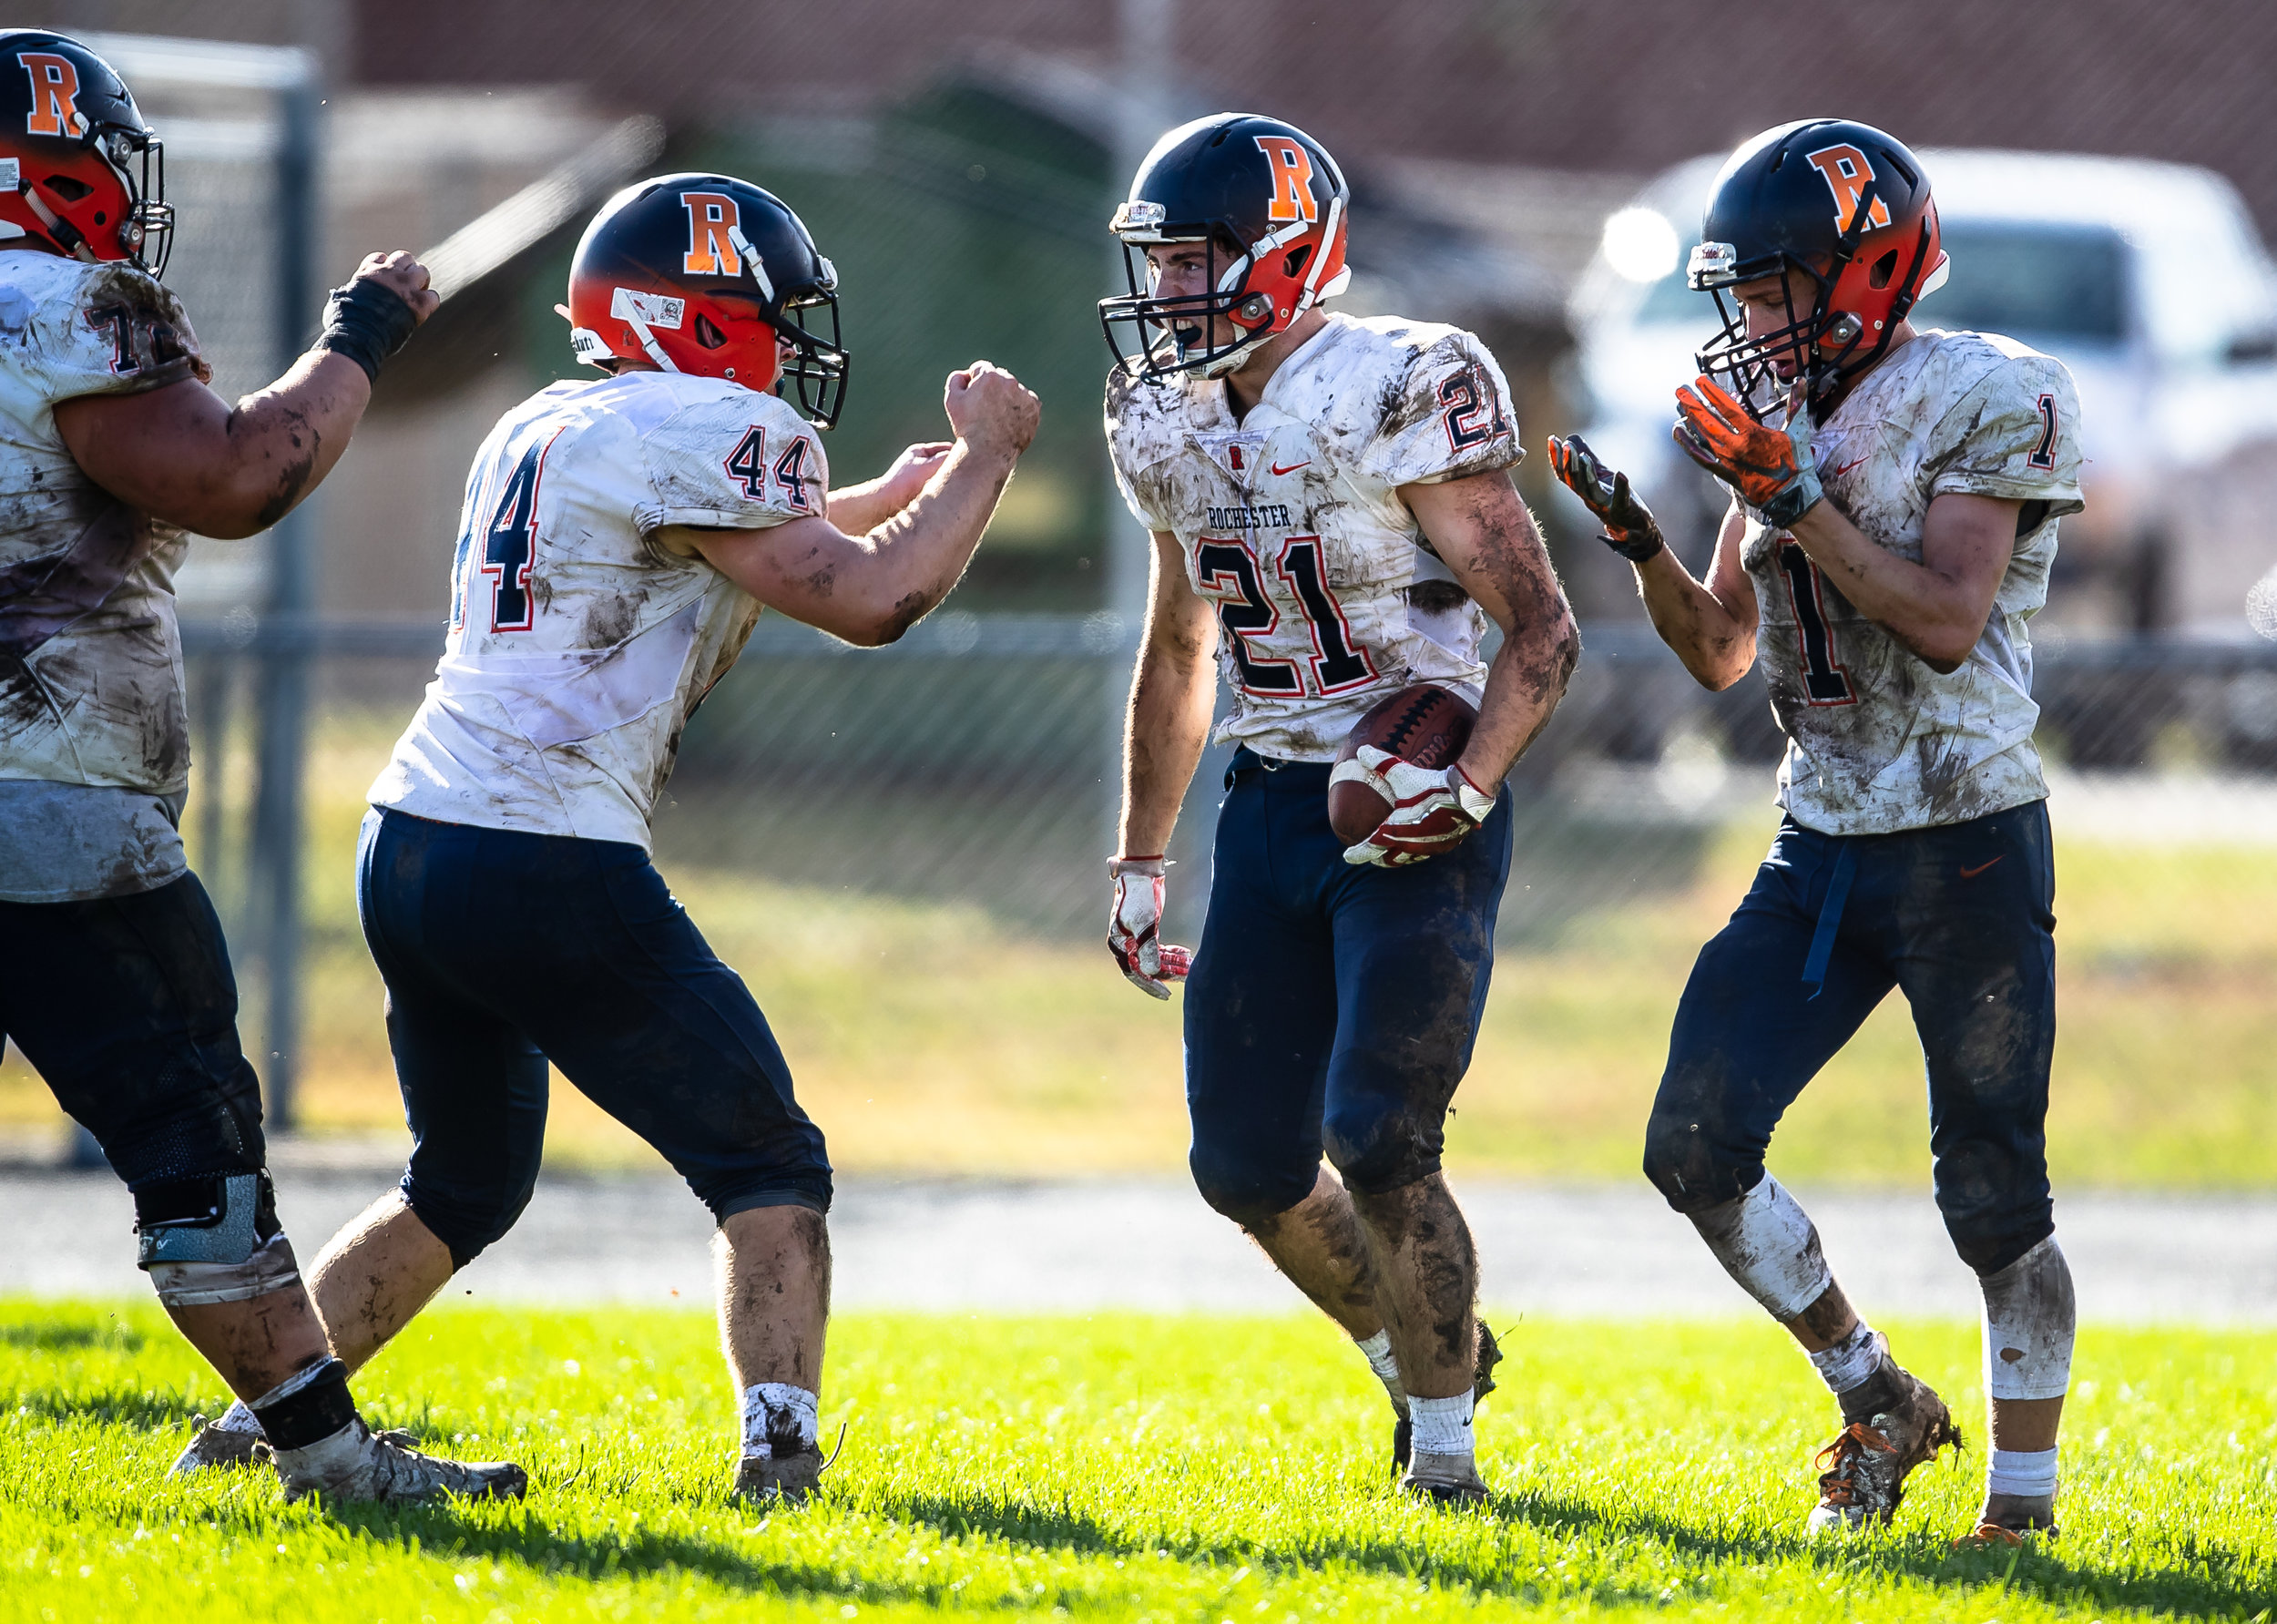 Rochester's David Yoggerst (21) is fired up with his teammates after a rushing touchdown against Springfield in the second half at Memorial Stadium, Saturday, Oct. 6, 2018, in Springfield, Ill. [Justin L. Fowler/The State Journal-Register]